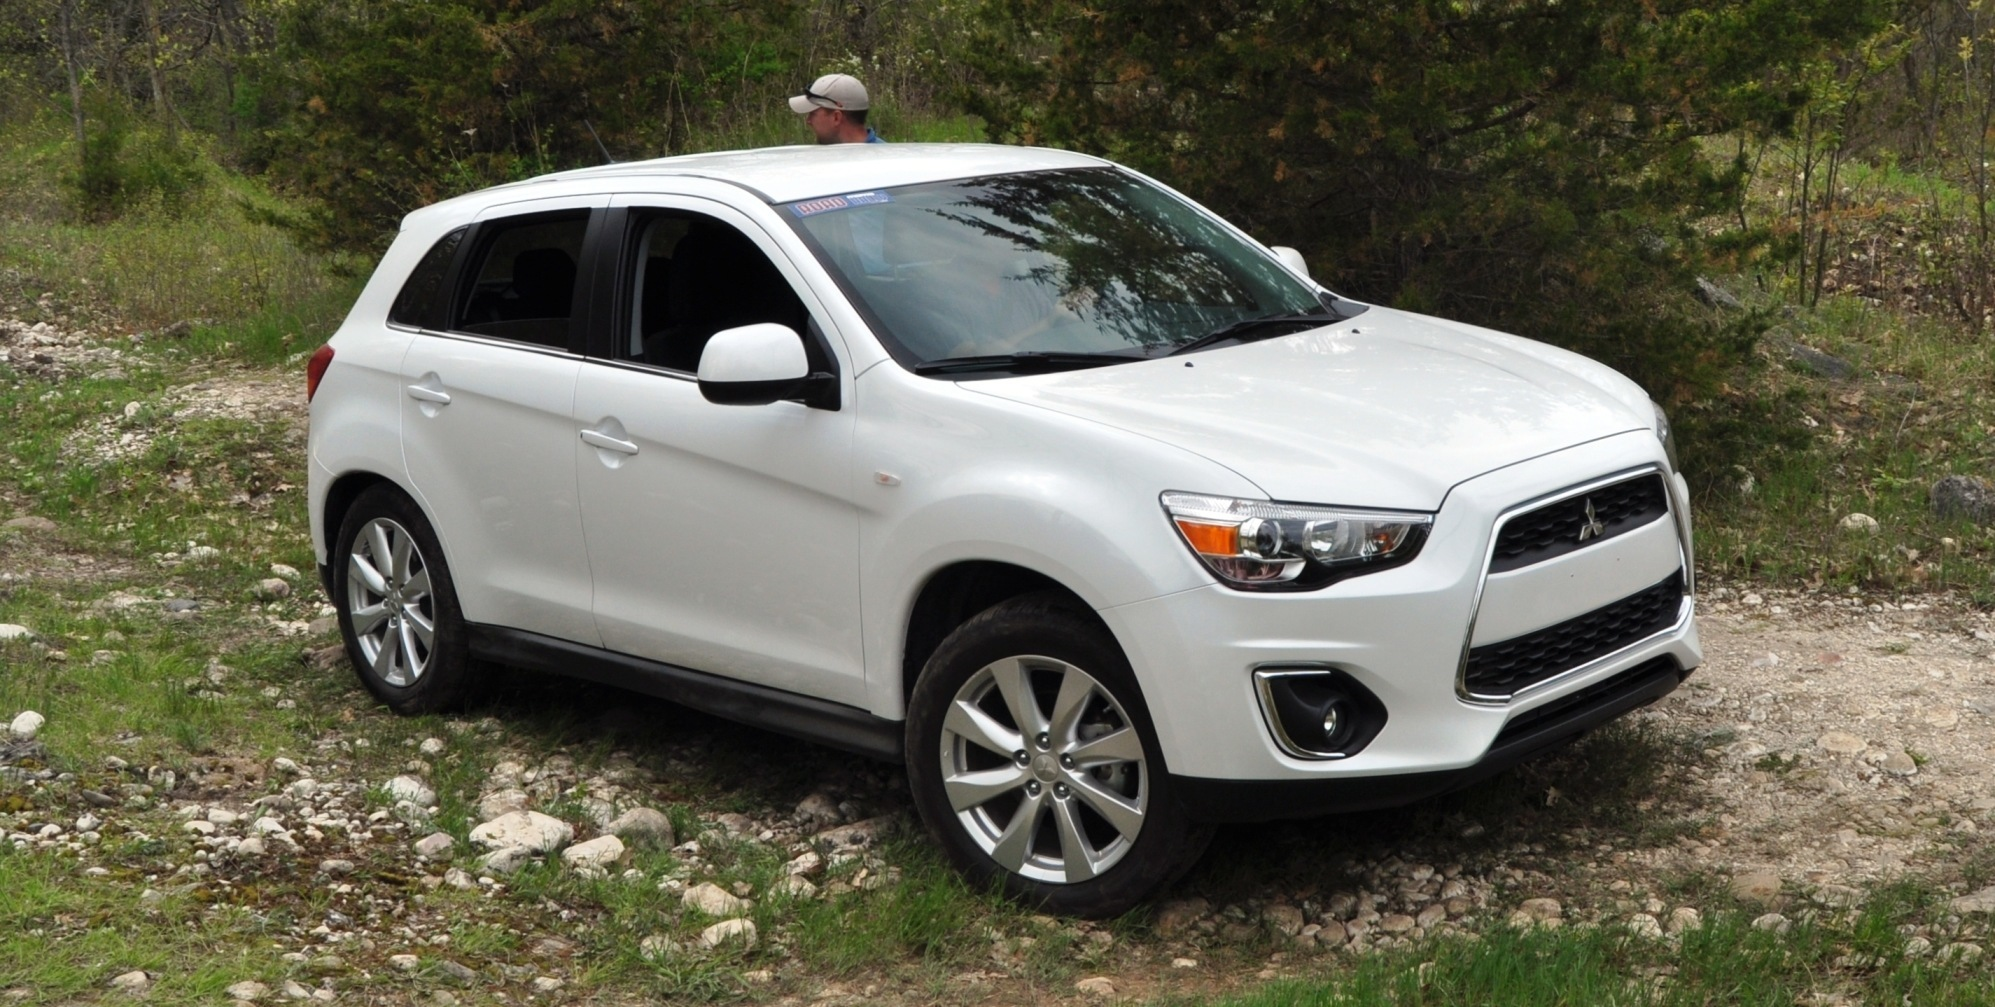 2015 mitsubishi outlander sport revamped with cool led running lights extra mpgs and quieter cabin. Black Bedroom Furniture Sets. Home Design Ideas